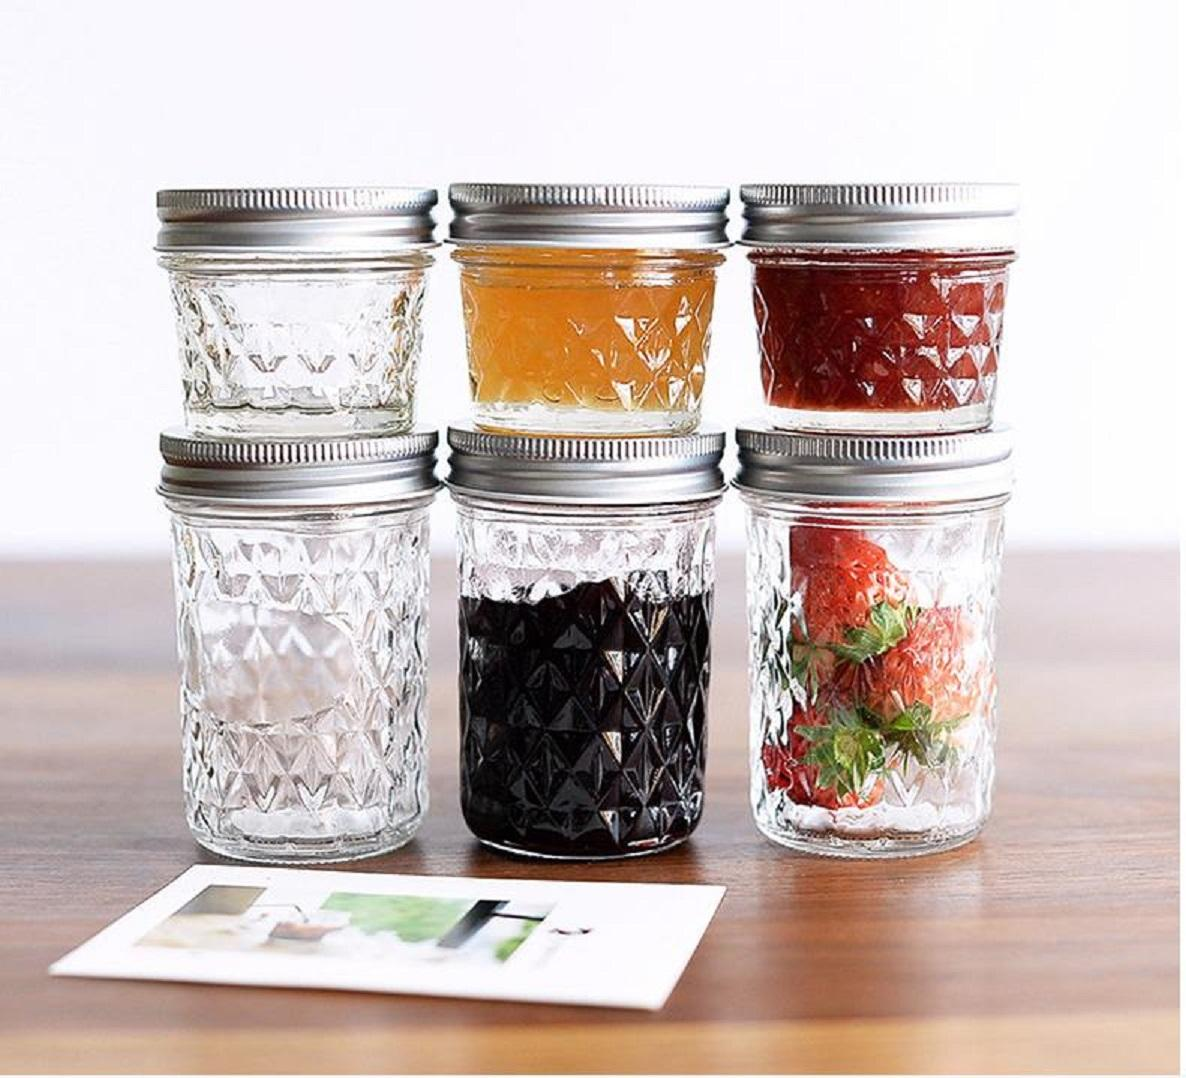 Wholesale diamond caviar jar honey glass jar mason cup hot sauce jam jar with curled tinplate lid